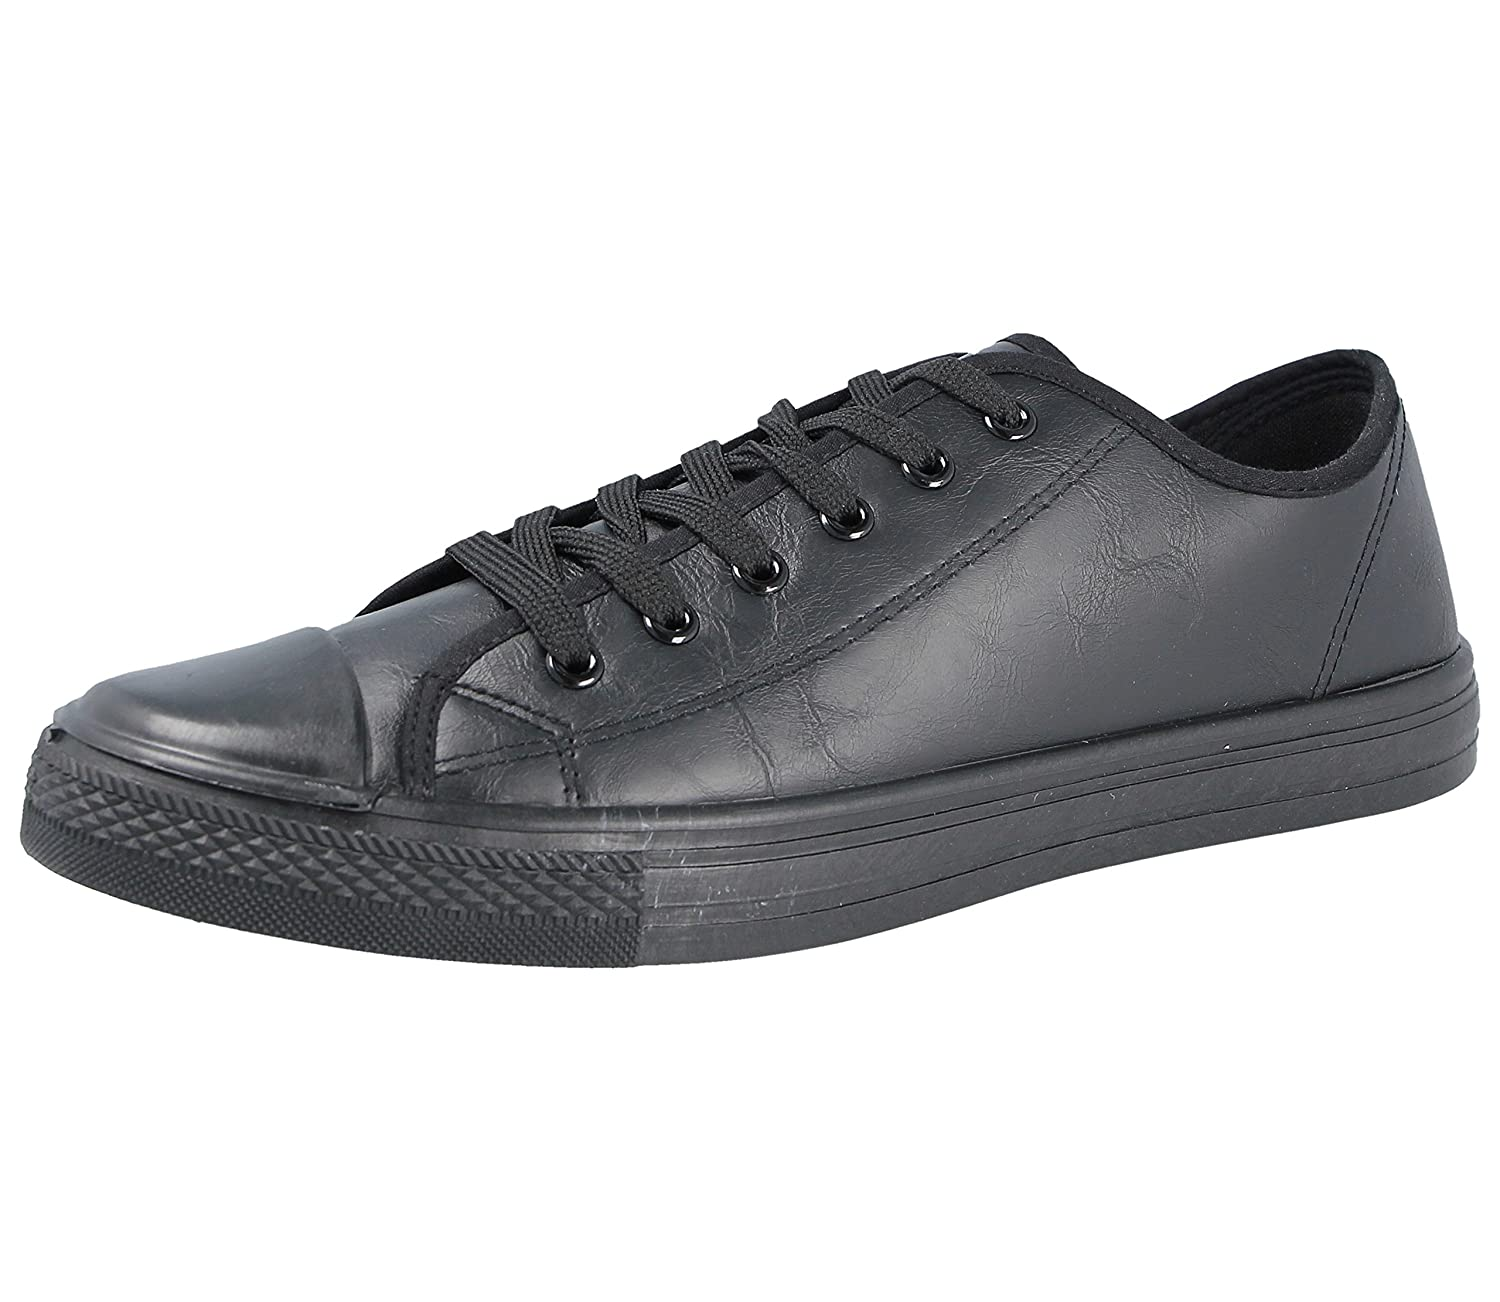 TALLA 41 EU . Mens Baltimore/Academia bajo Top Hi Top Lienzo Toe Cap Lace Up Bombas de Zapatilla Deportiva All Star Zapatillas Casual Zapatos tamaño 6 – 12